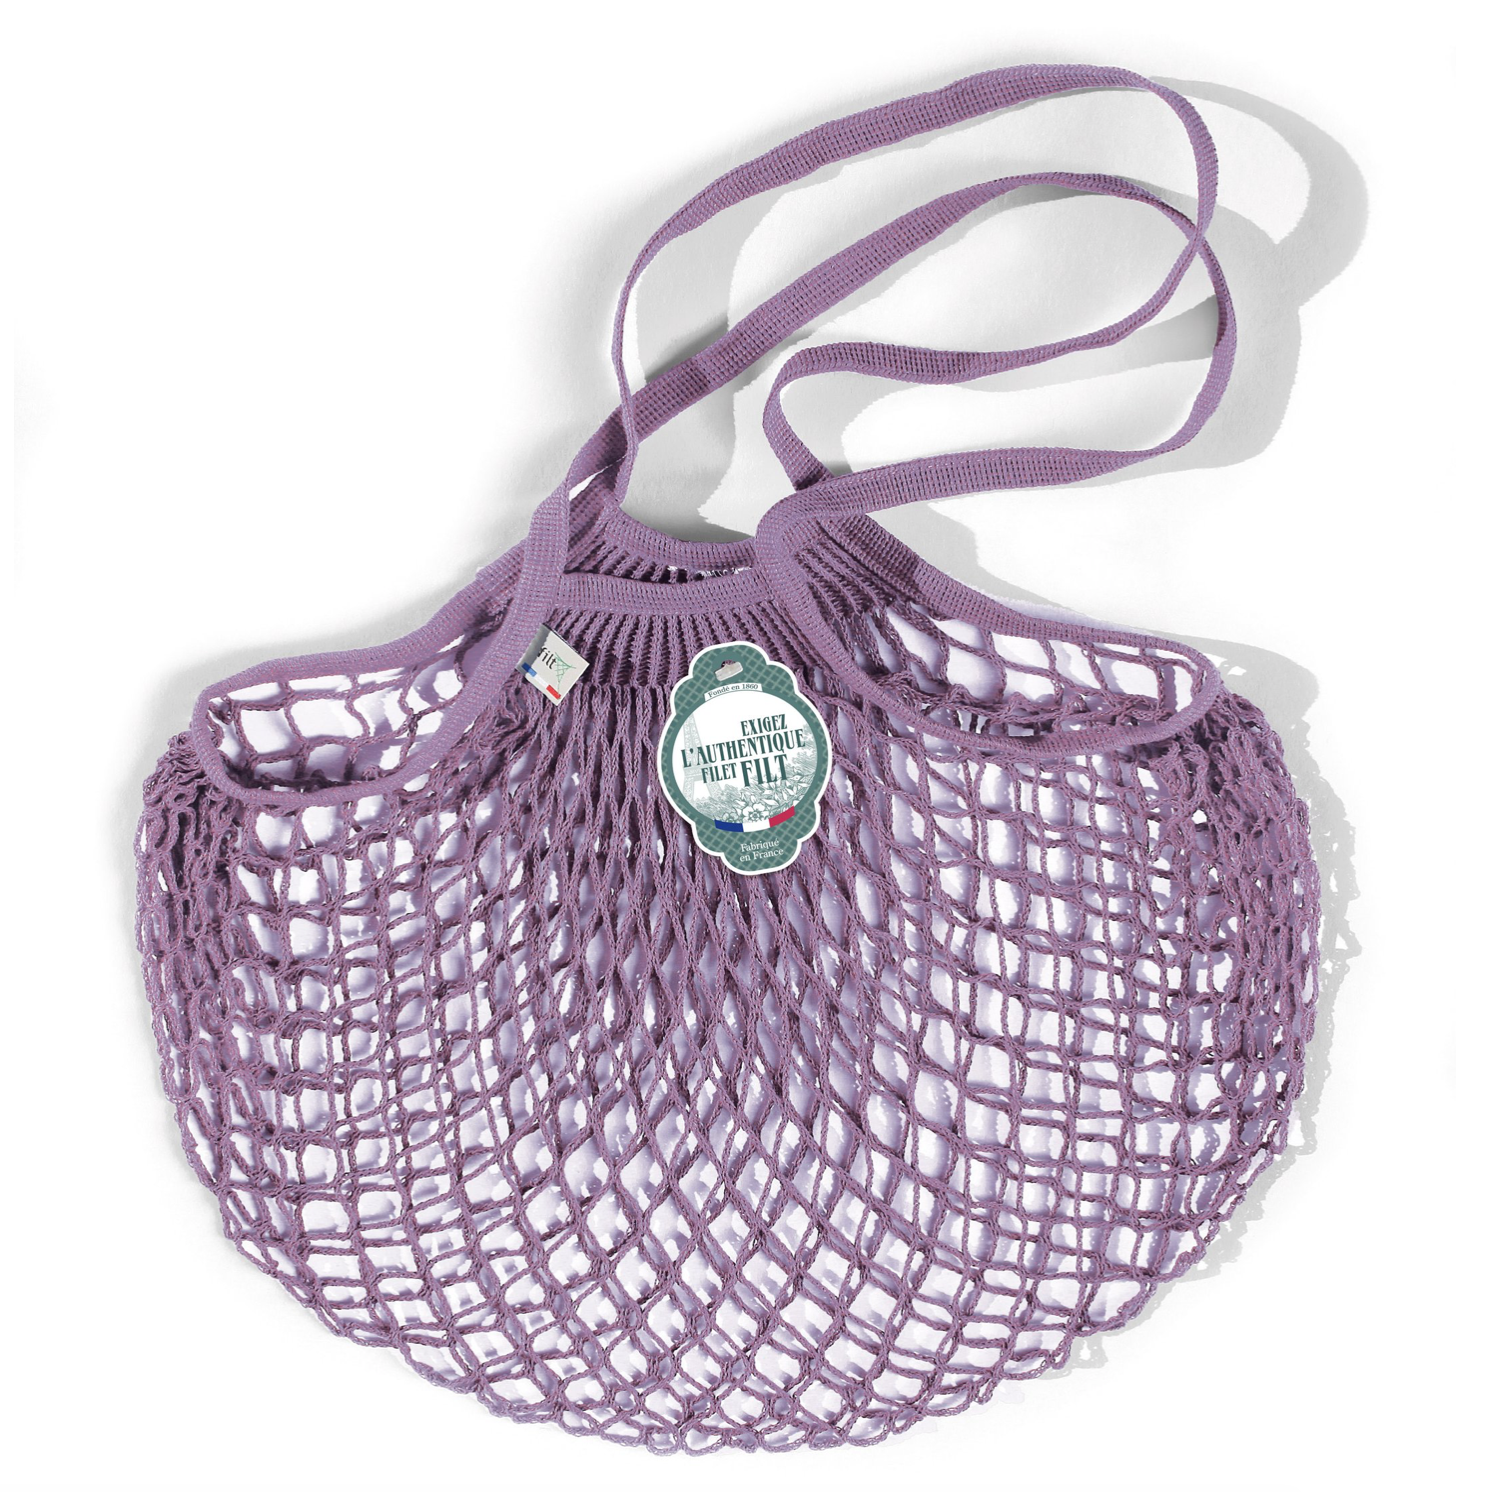 COTTON FRENCH MARKET NET BAG ((MEDIUM) - LILAC